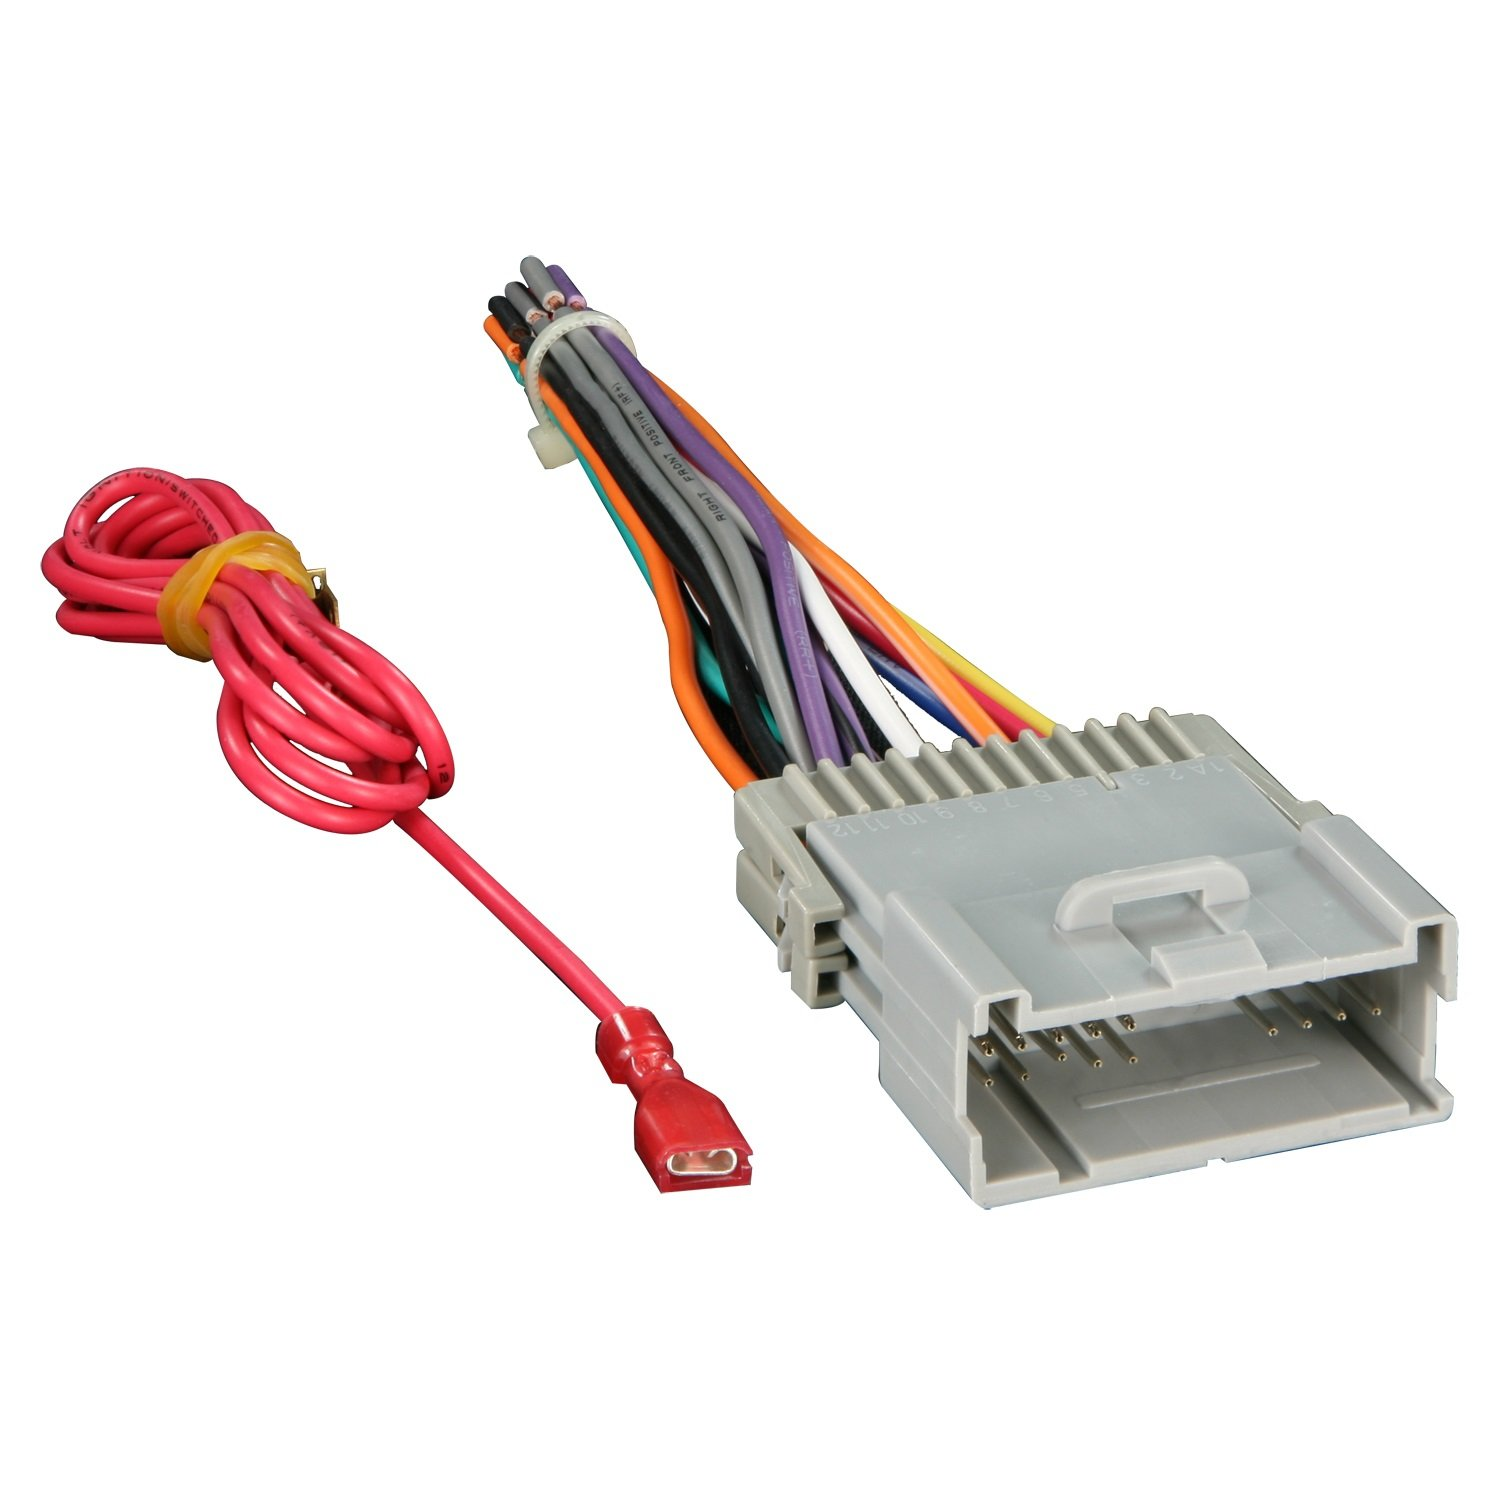 61eewxp9orL._SL1500_ amazon com metra 70 2003 radio wiring harness for gm 98 08 Chevy Silverado Evap System at readyjetset.co